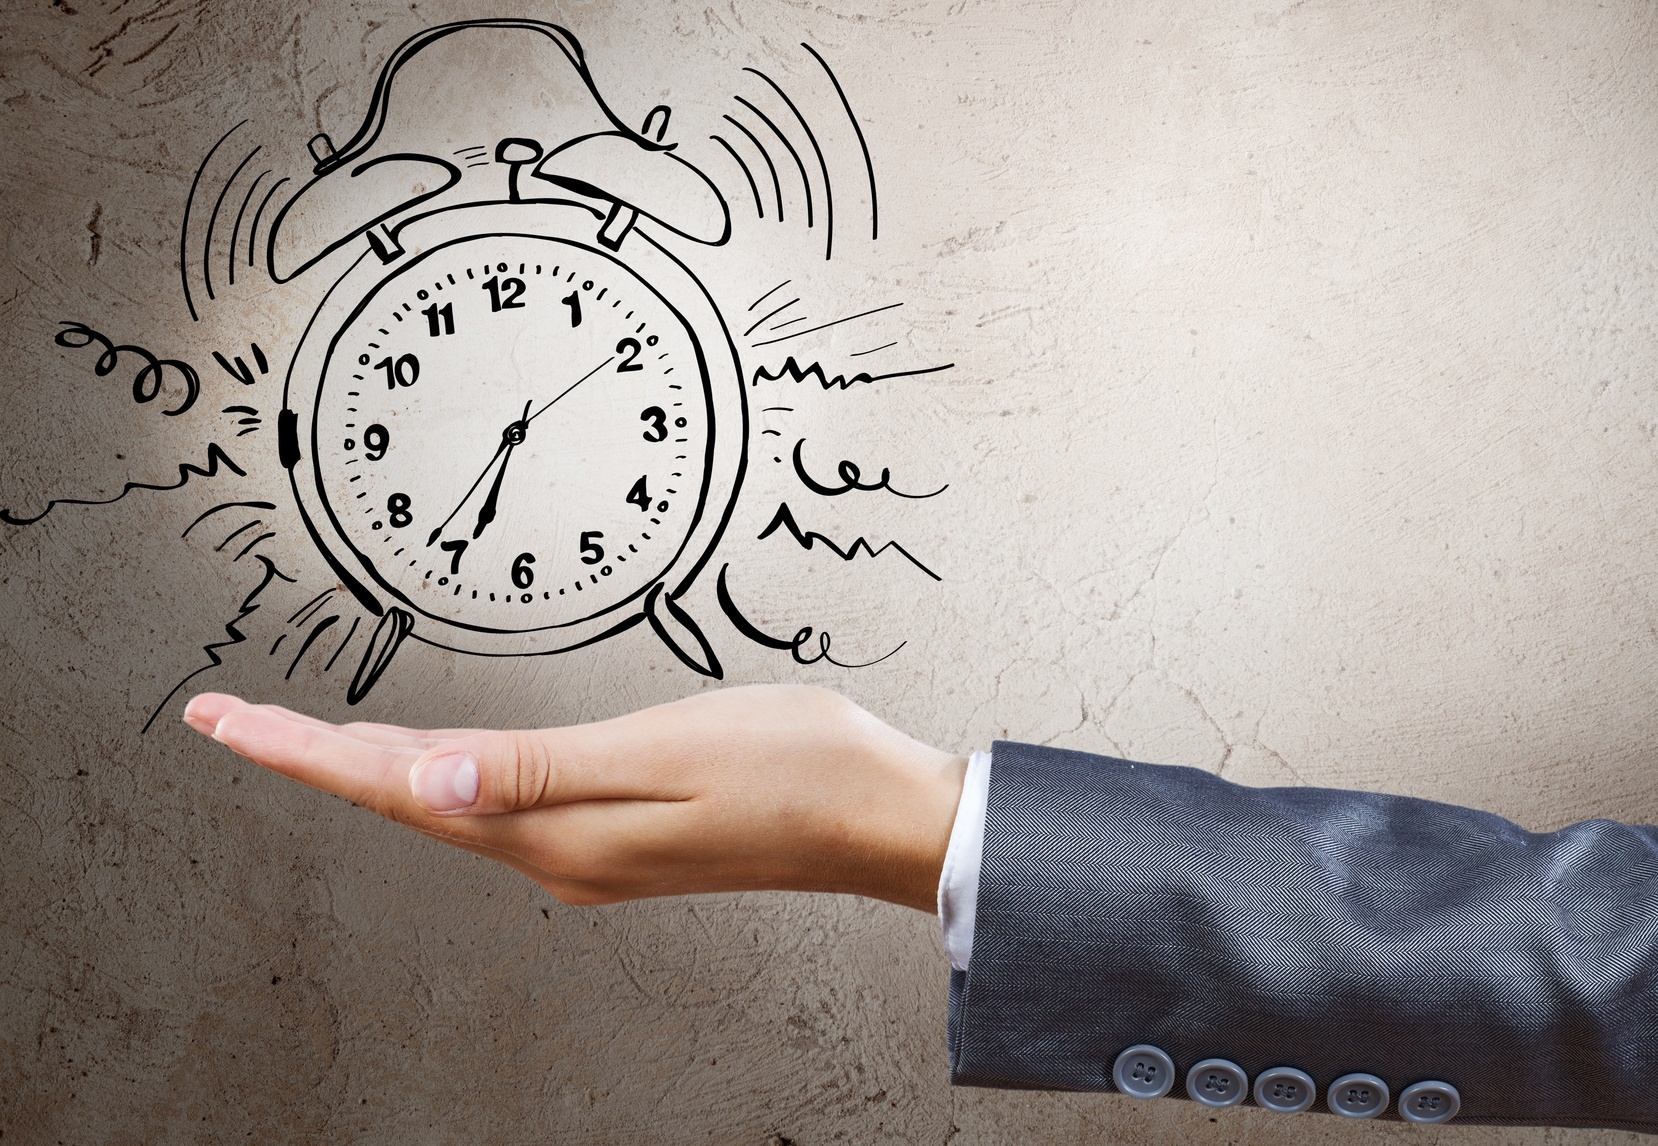 Creating urgency in the sales cycle